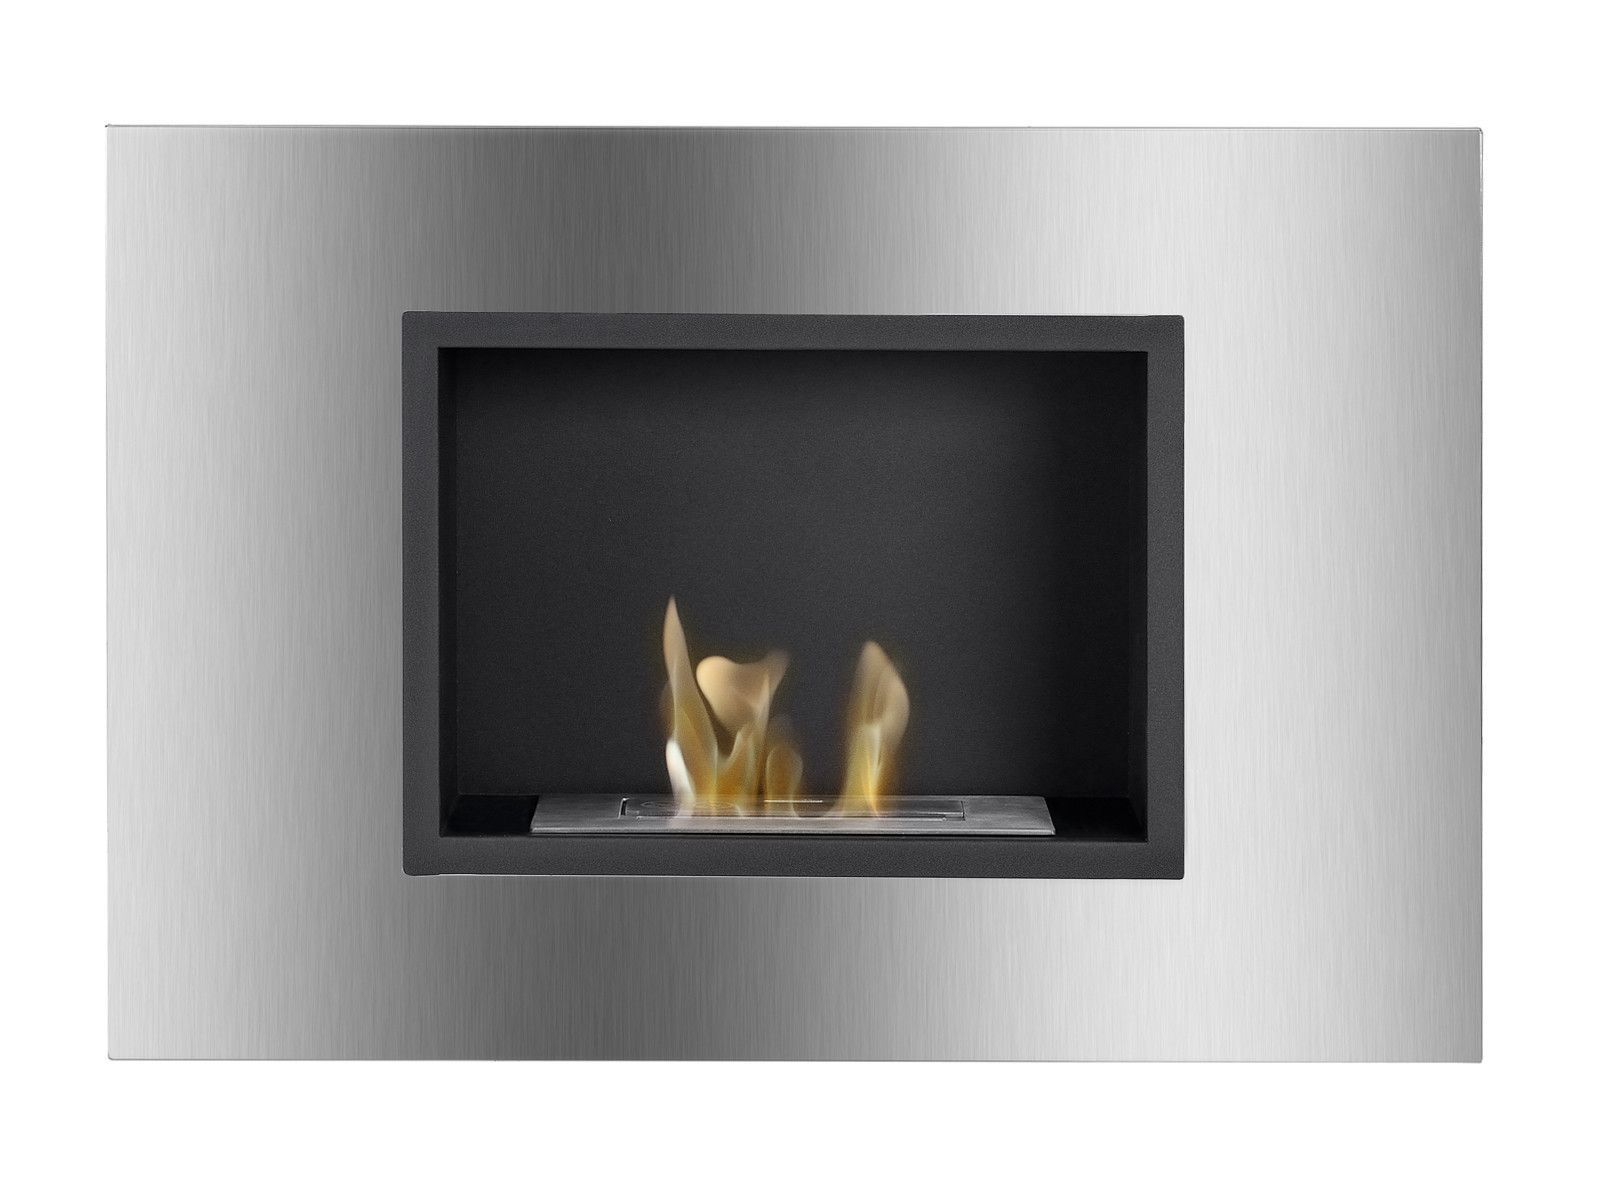 quadra recessed ventless ethanol fireplace products fireplaces